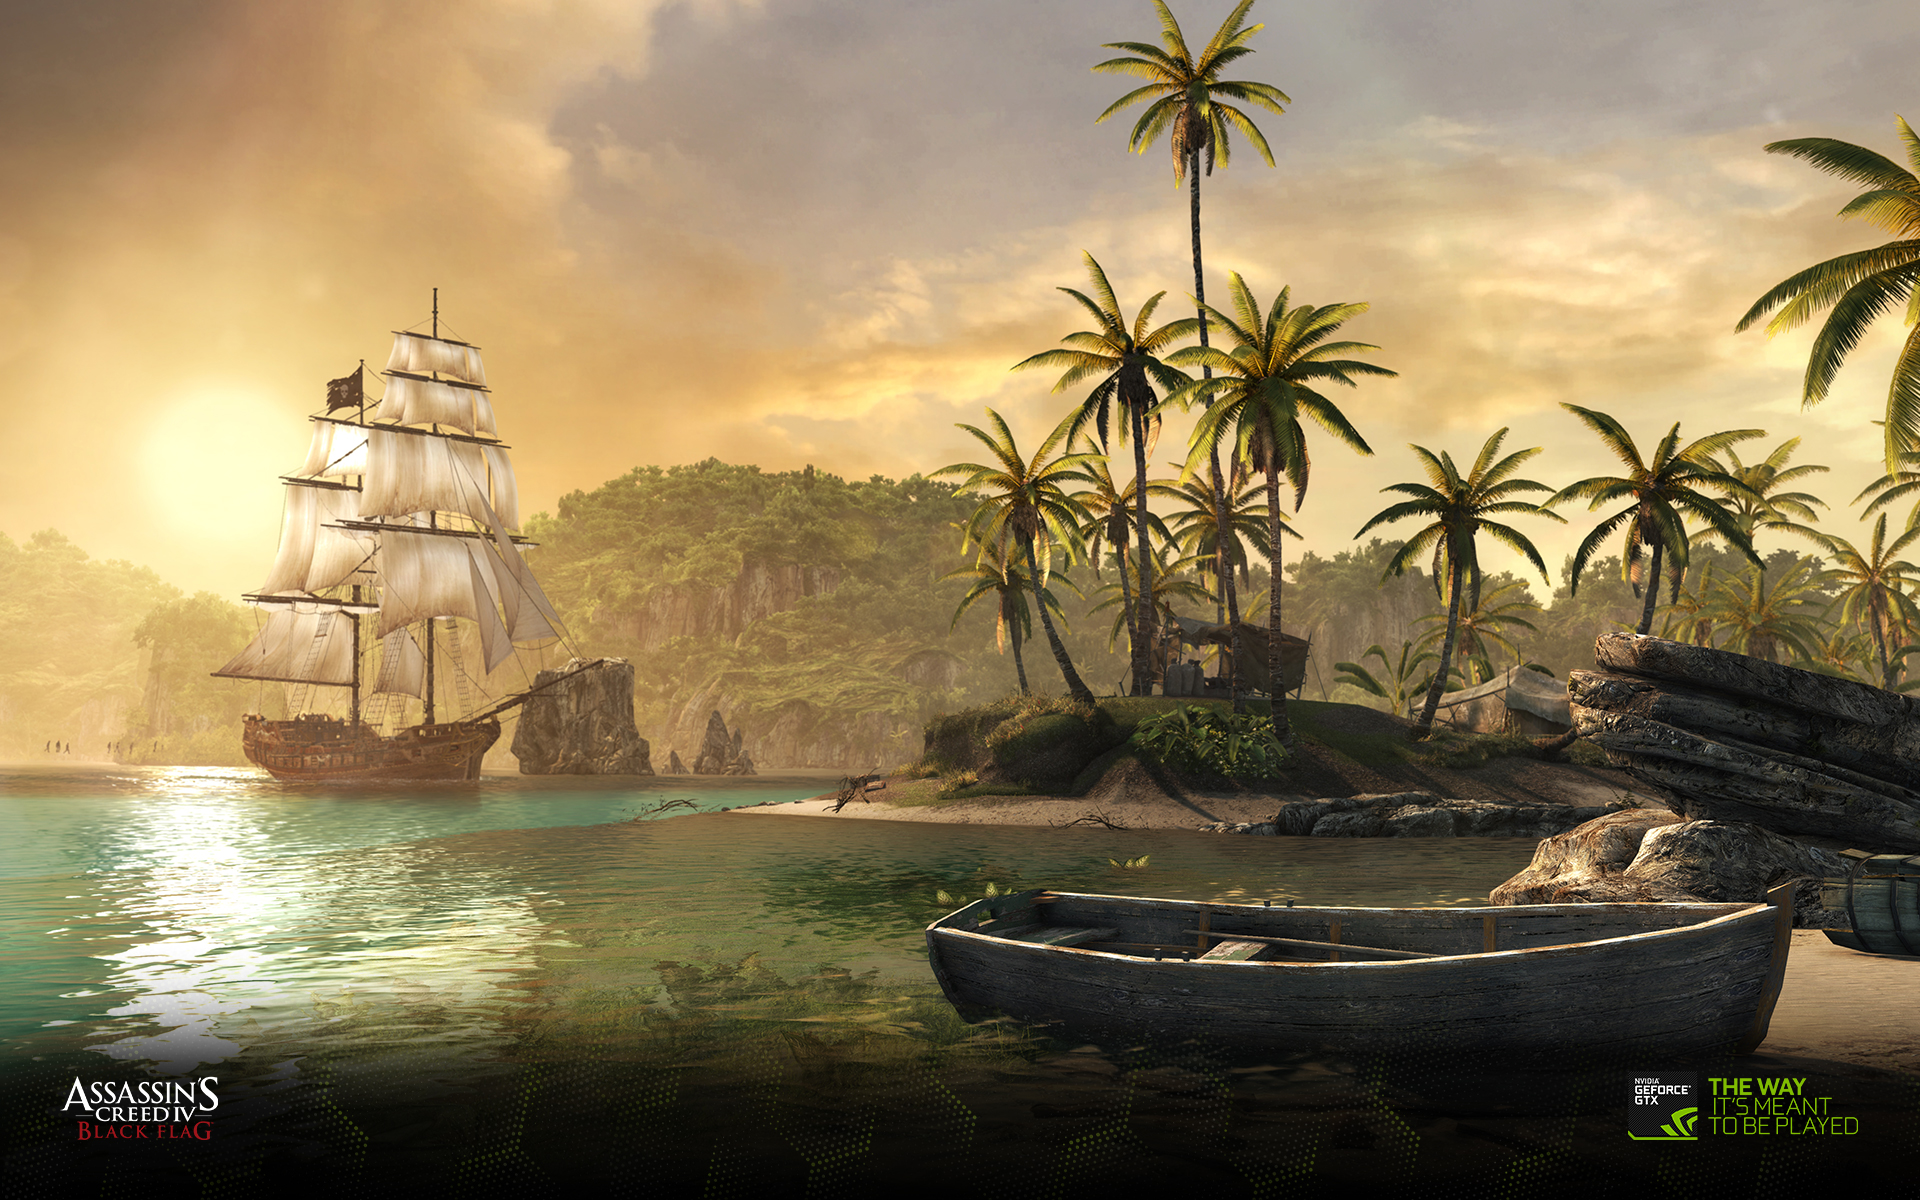 Download the assassins creed iv black flag wallpapers geforce download download download voltagebd Gallery